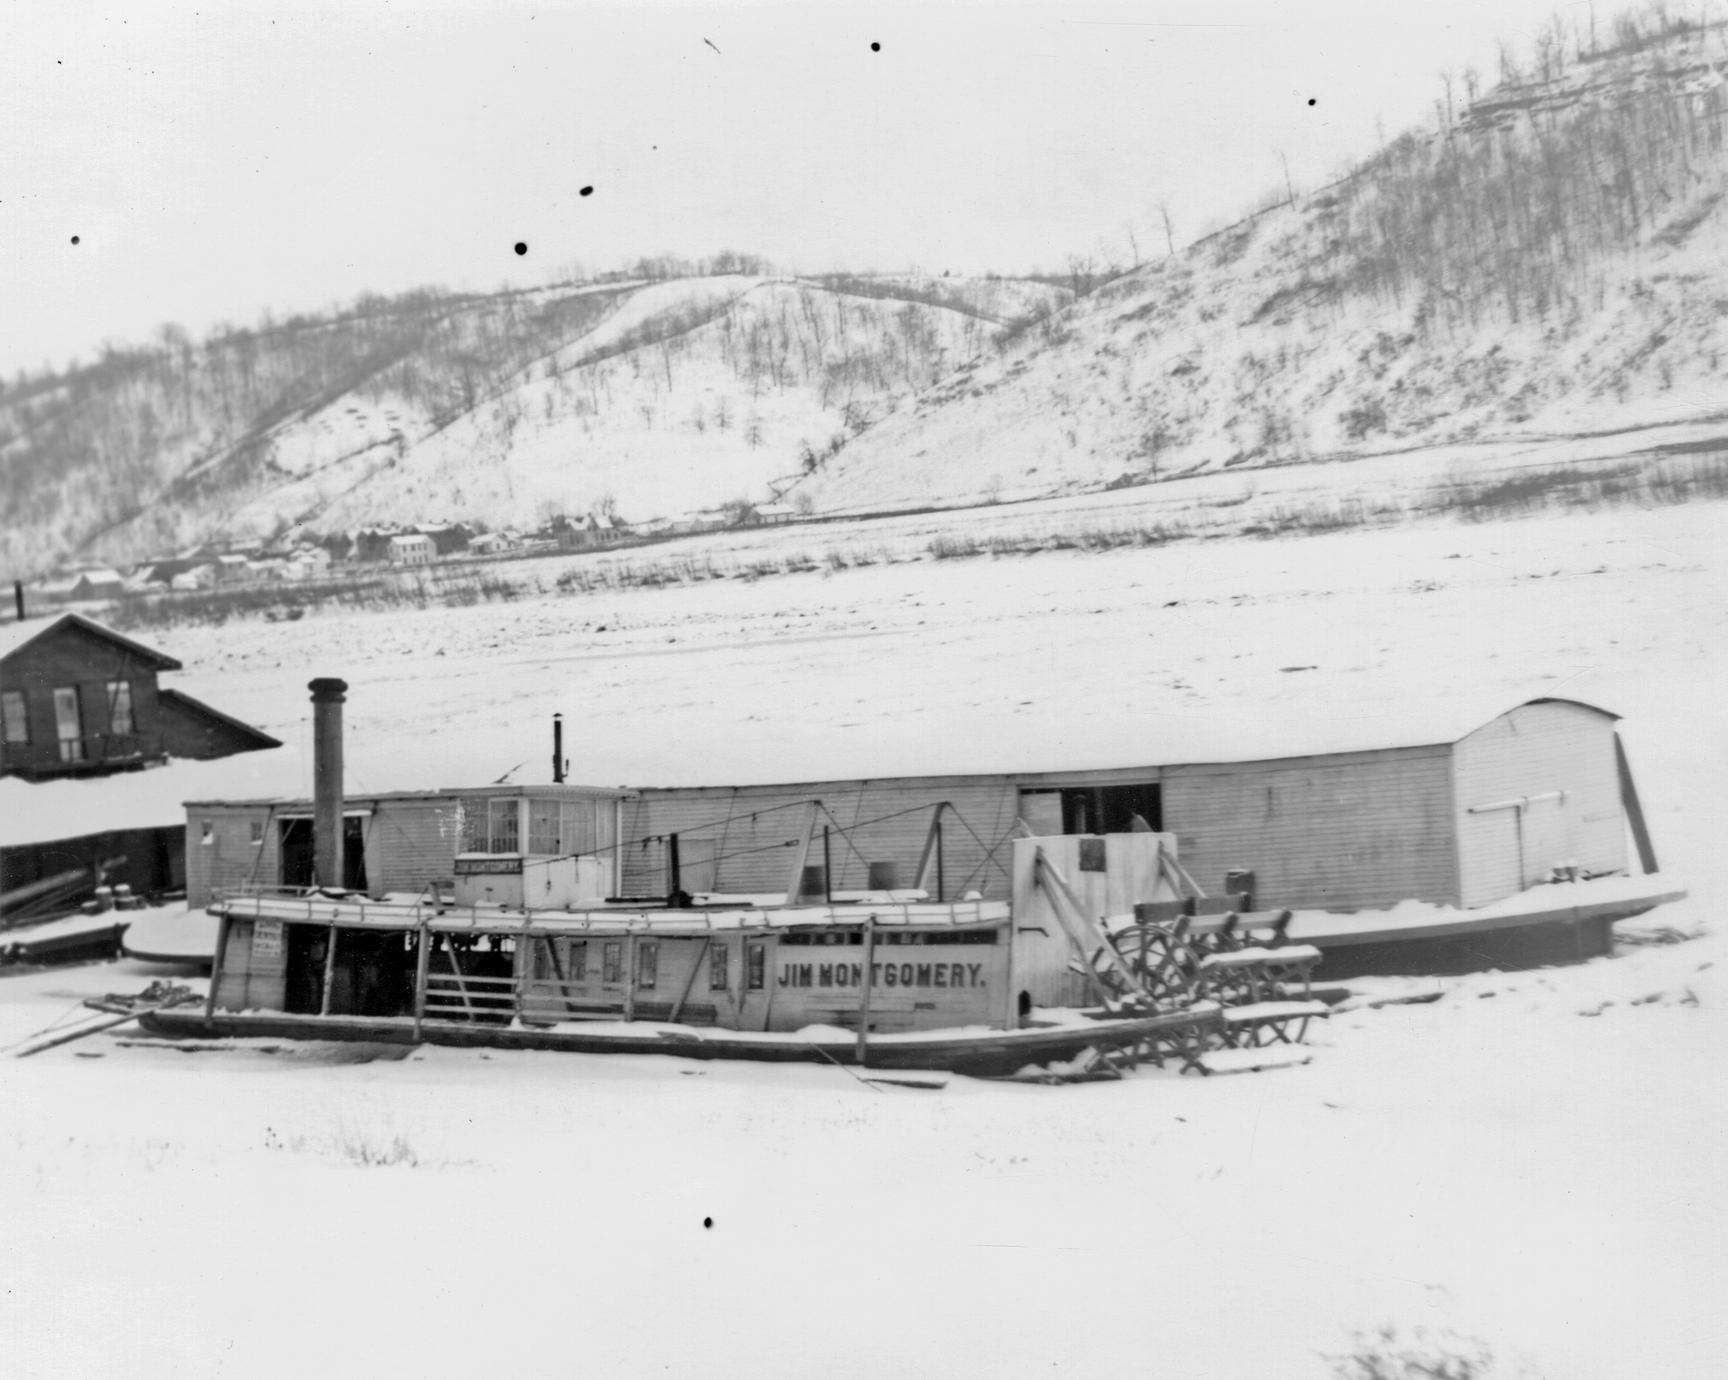 Jim Montgomery (Packet/towboat, 1890-1901)